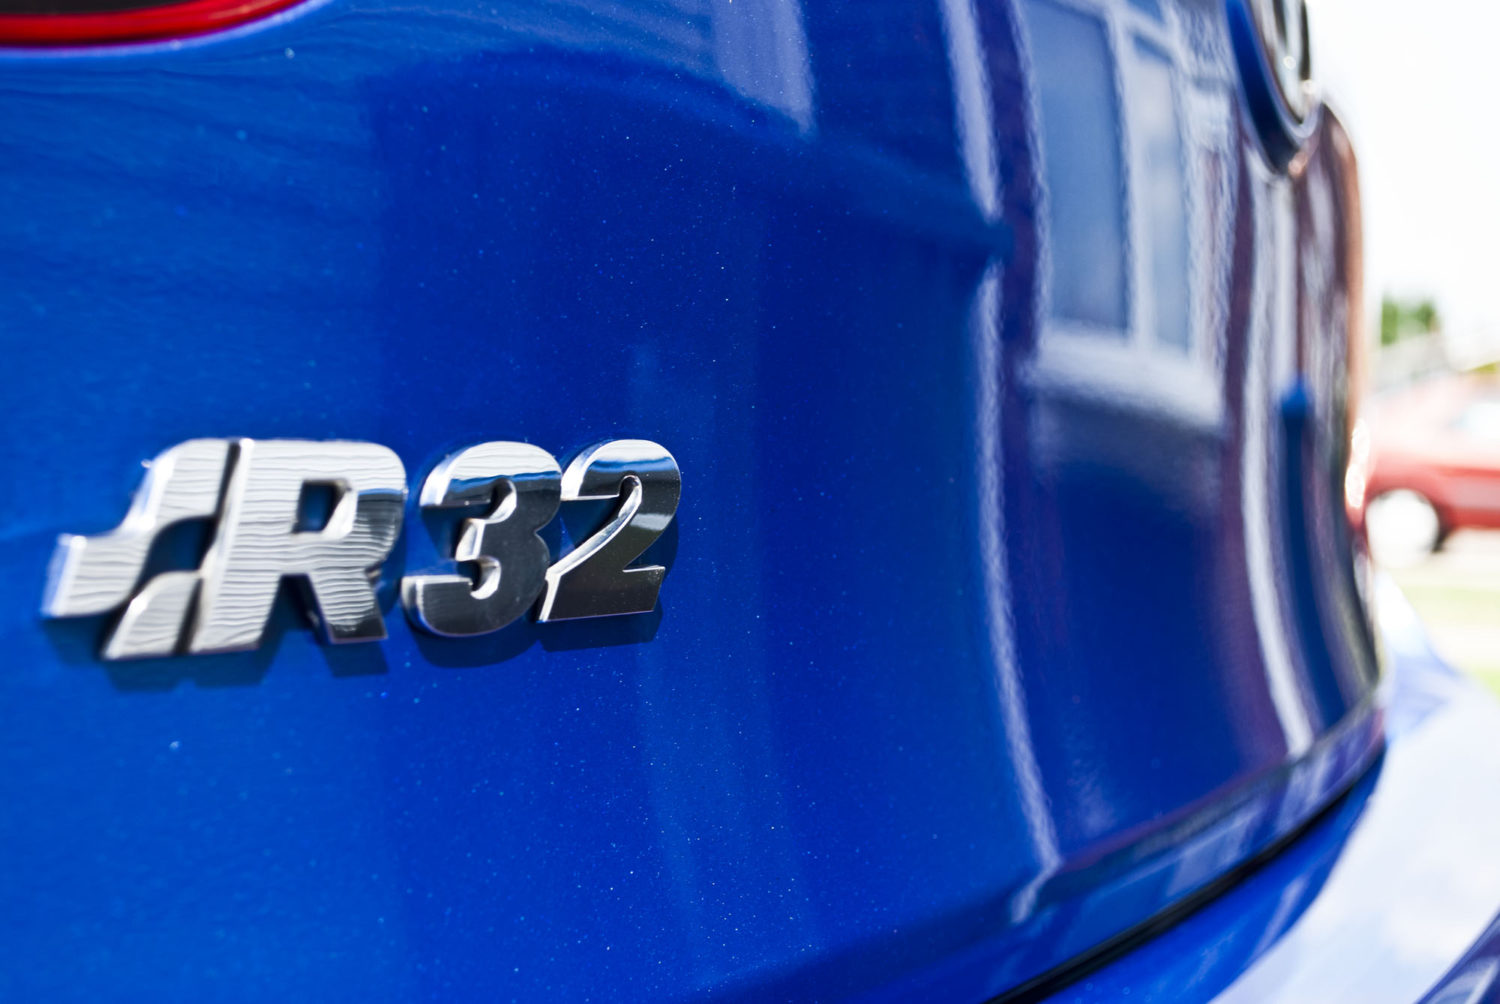 Volkswagen Golf R32 Detailed by DWR Detailing